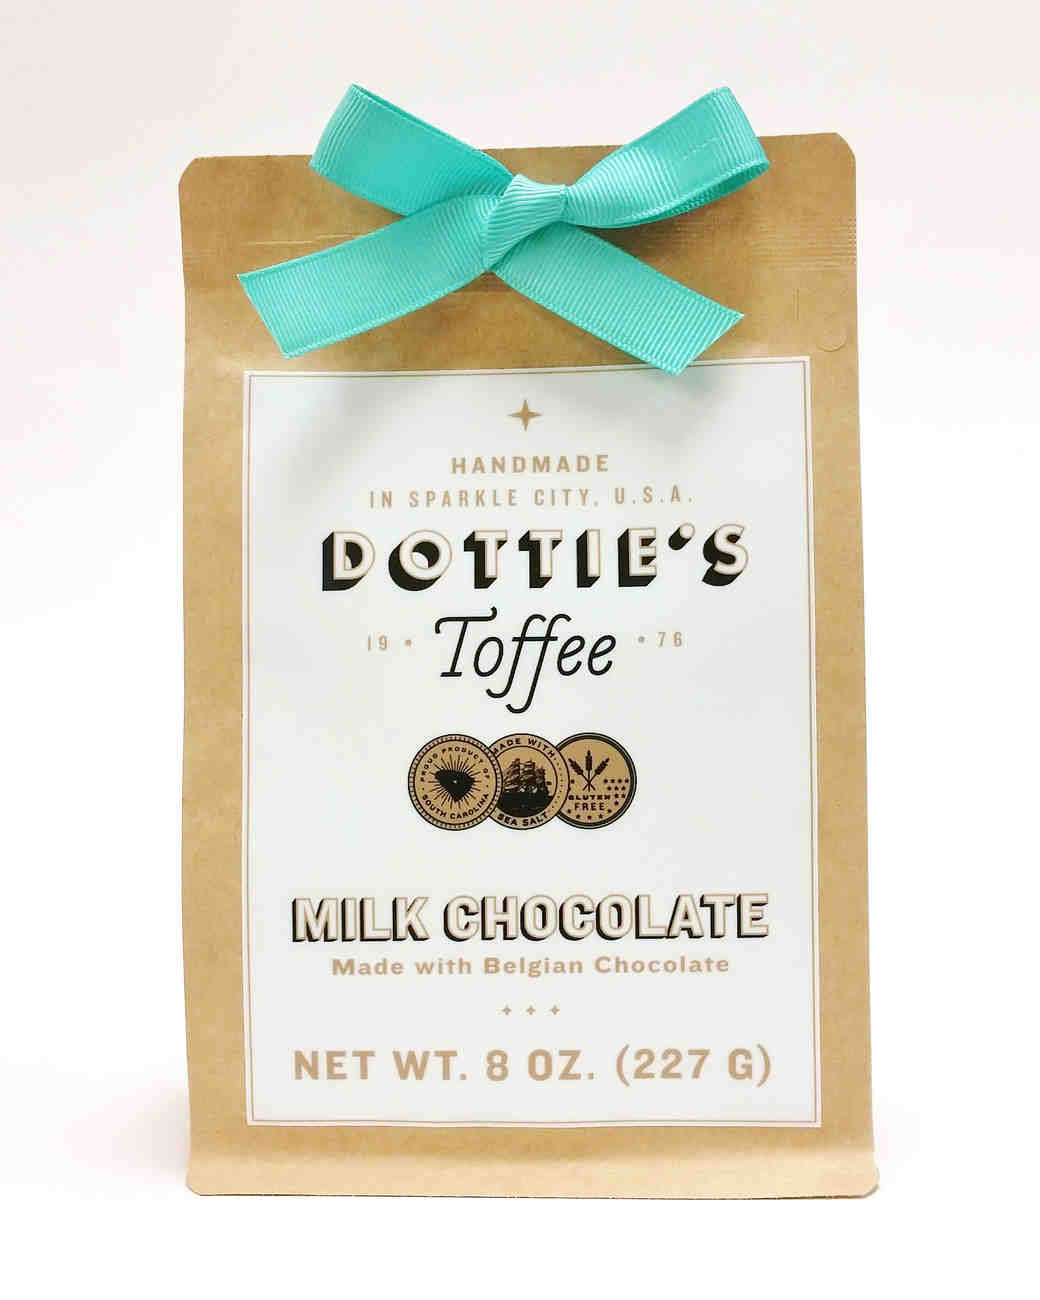 dotties-chocolate-suitessweets-0315-copy.jpg